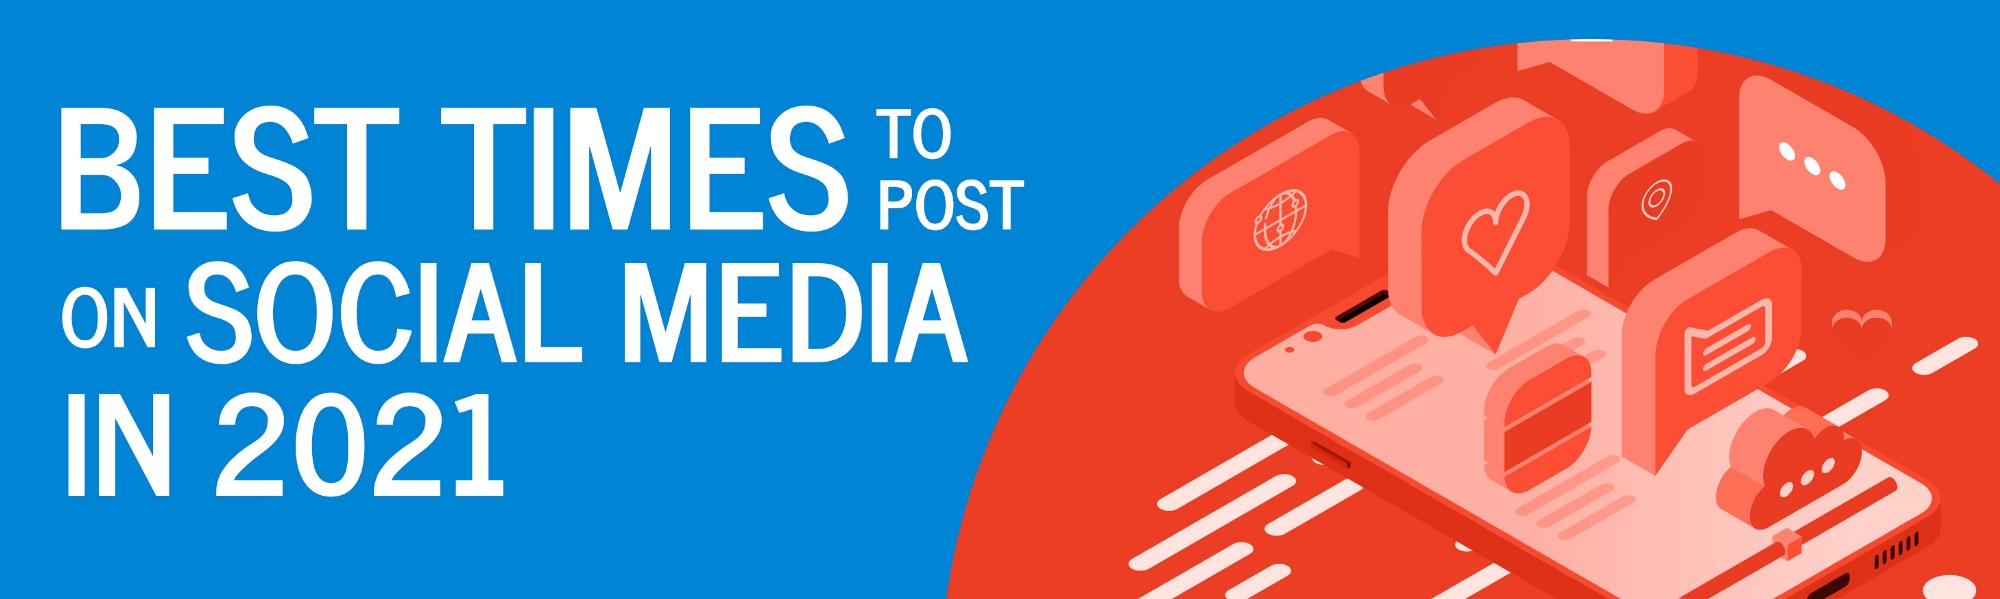 Update: Best Times to Post on Social Media in 2021